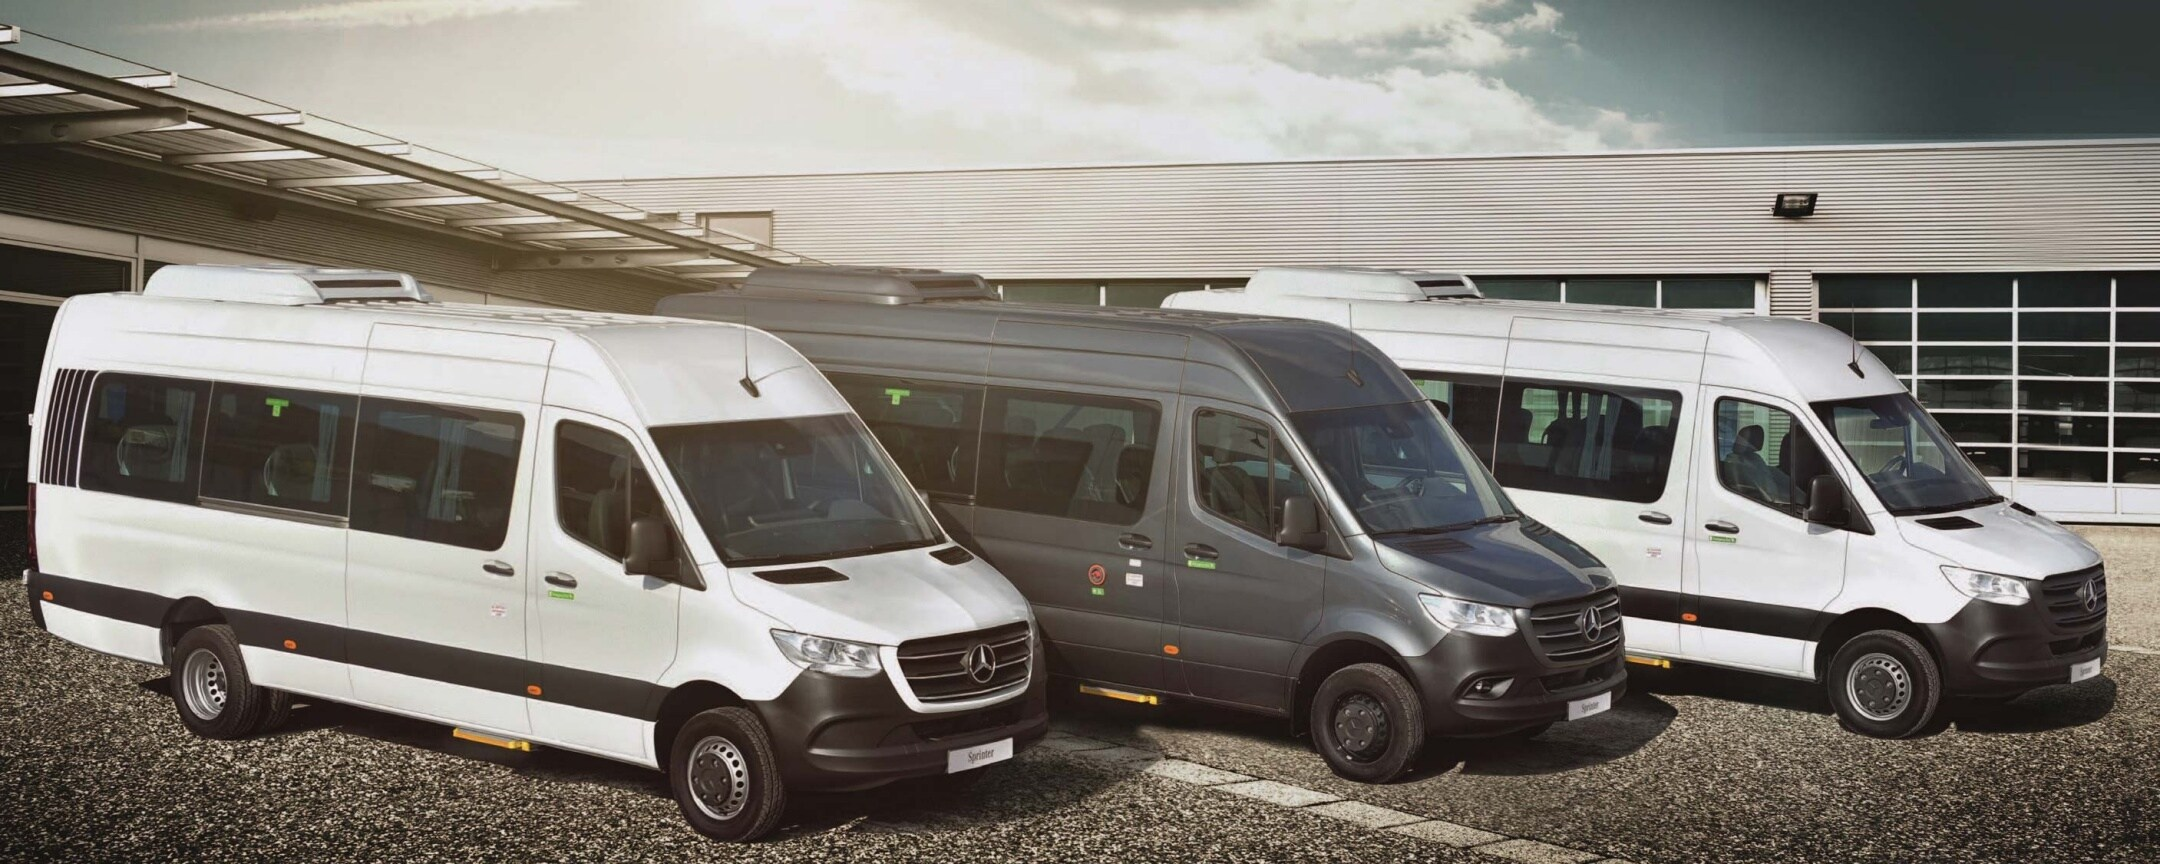 "The Sprinter ""Shuttle"" Line-up: a true professional in passenger transport"